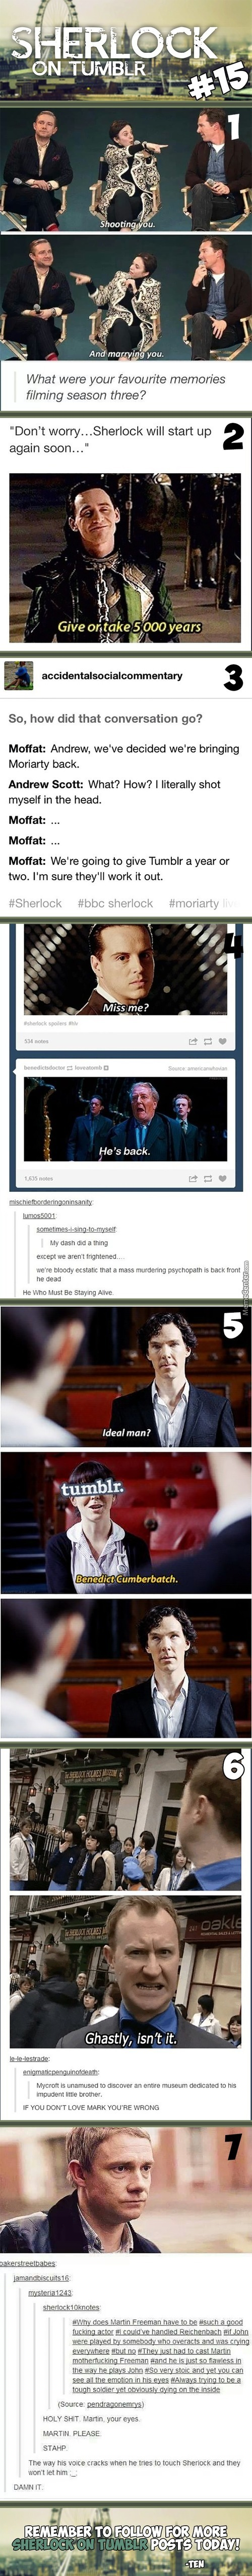 Sherlock On Tumblr #15